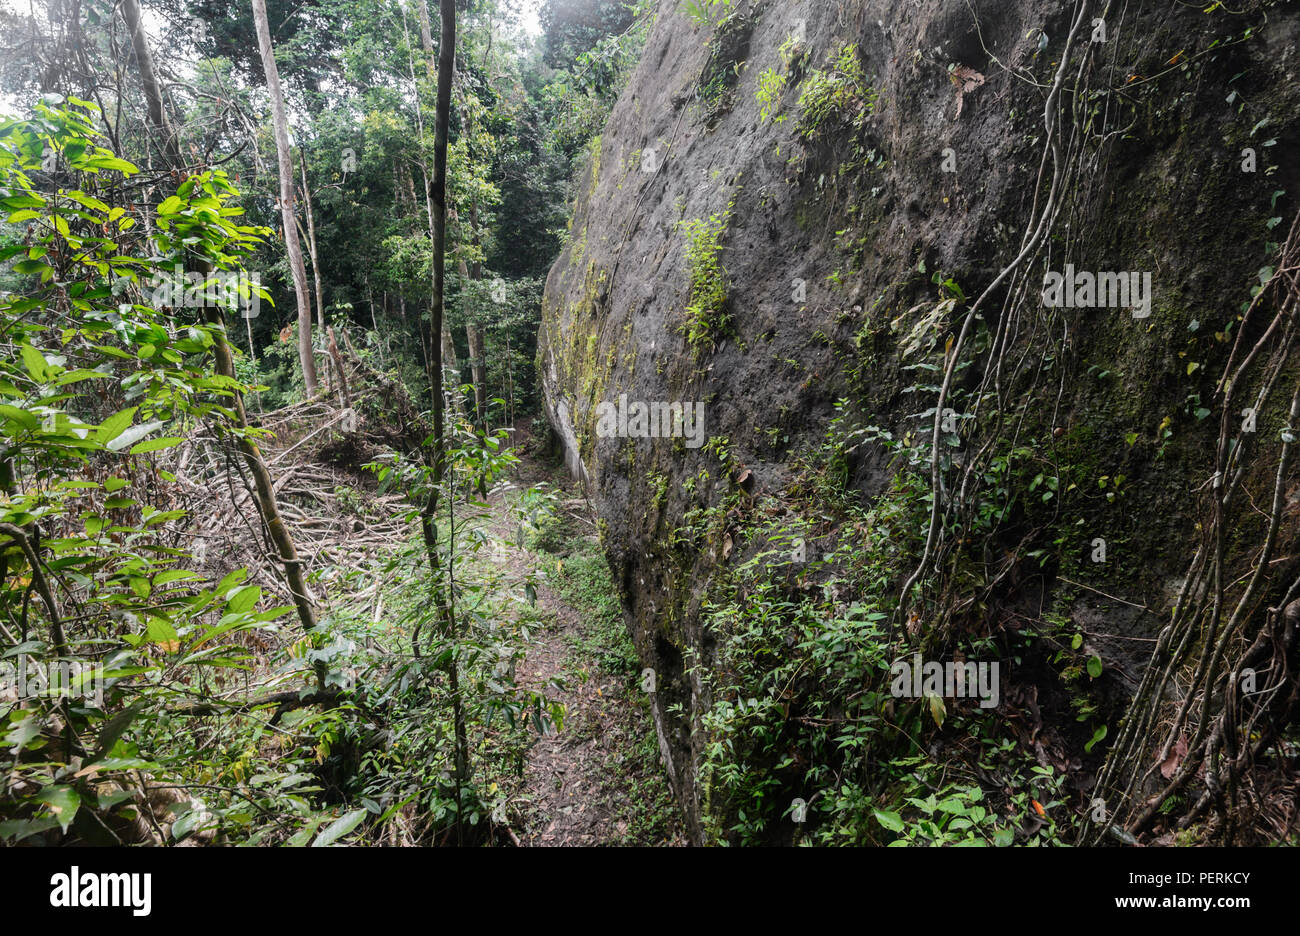 Coffin Cliff where the Sugpan ethnic group used to bury their ancestors, Danum Valley Conservation Area, Sabah, Borneo, Malaysia - Stock Image